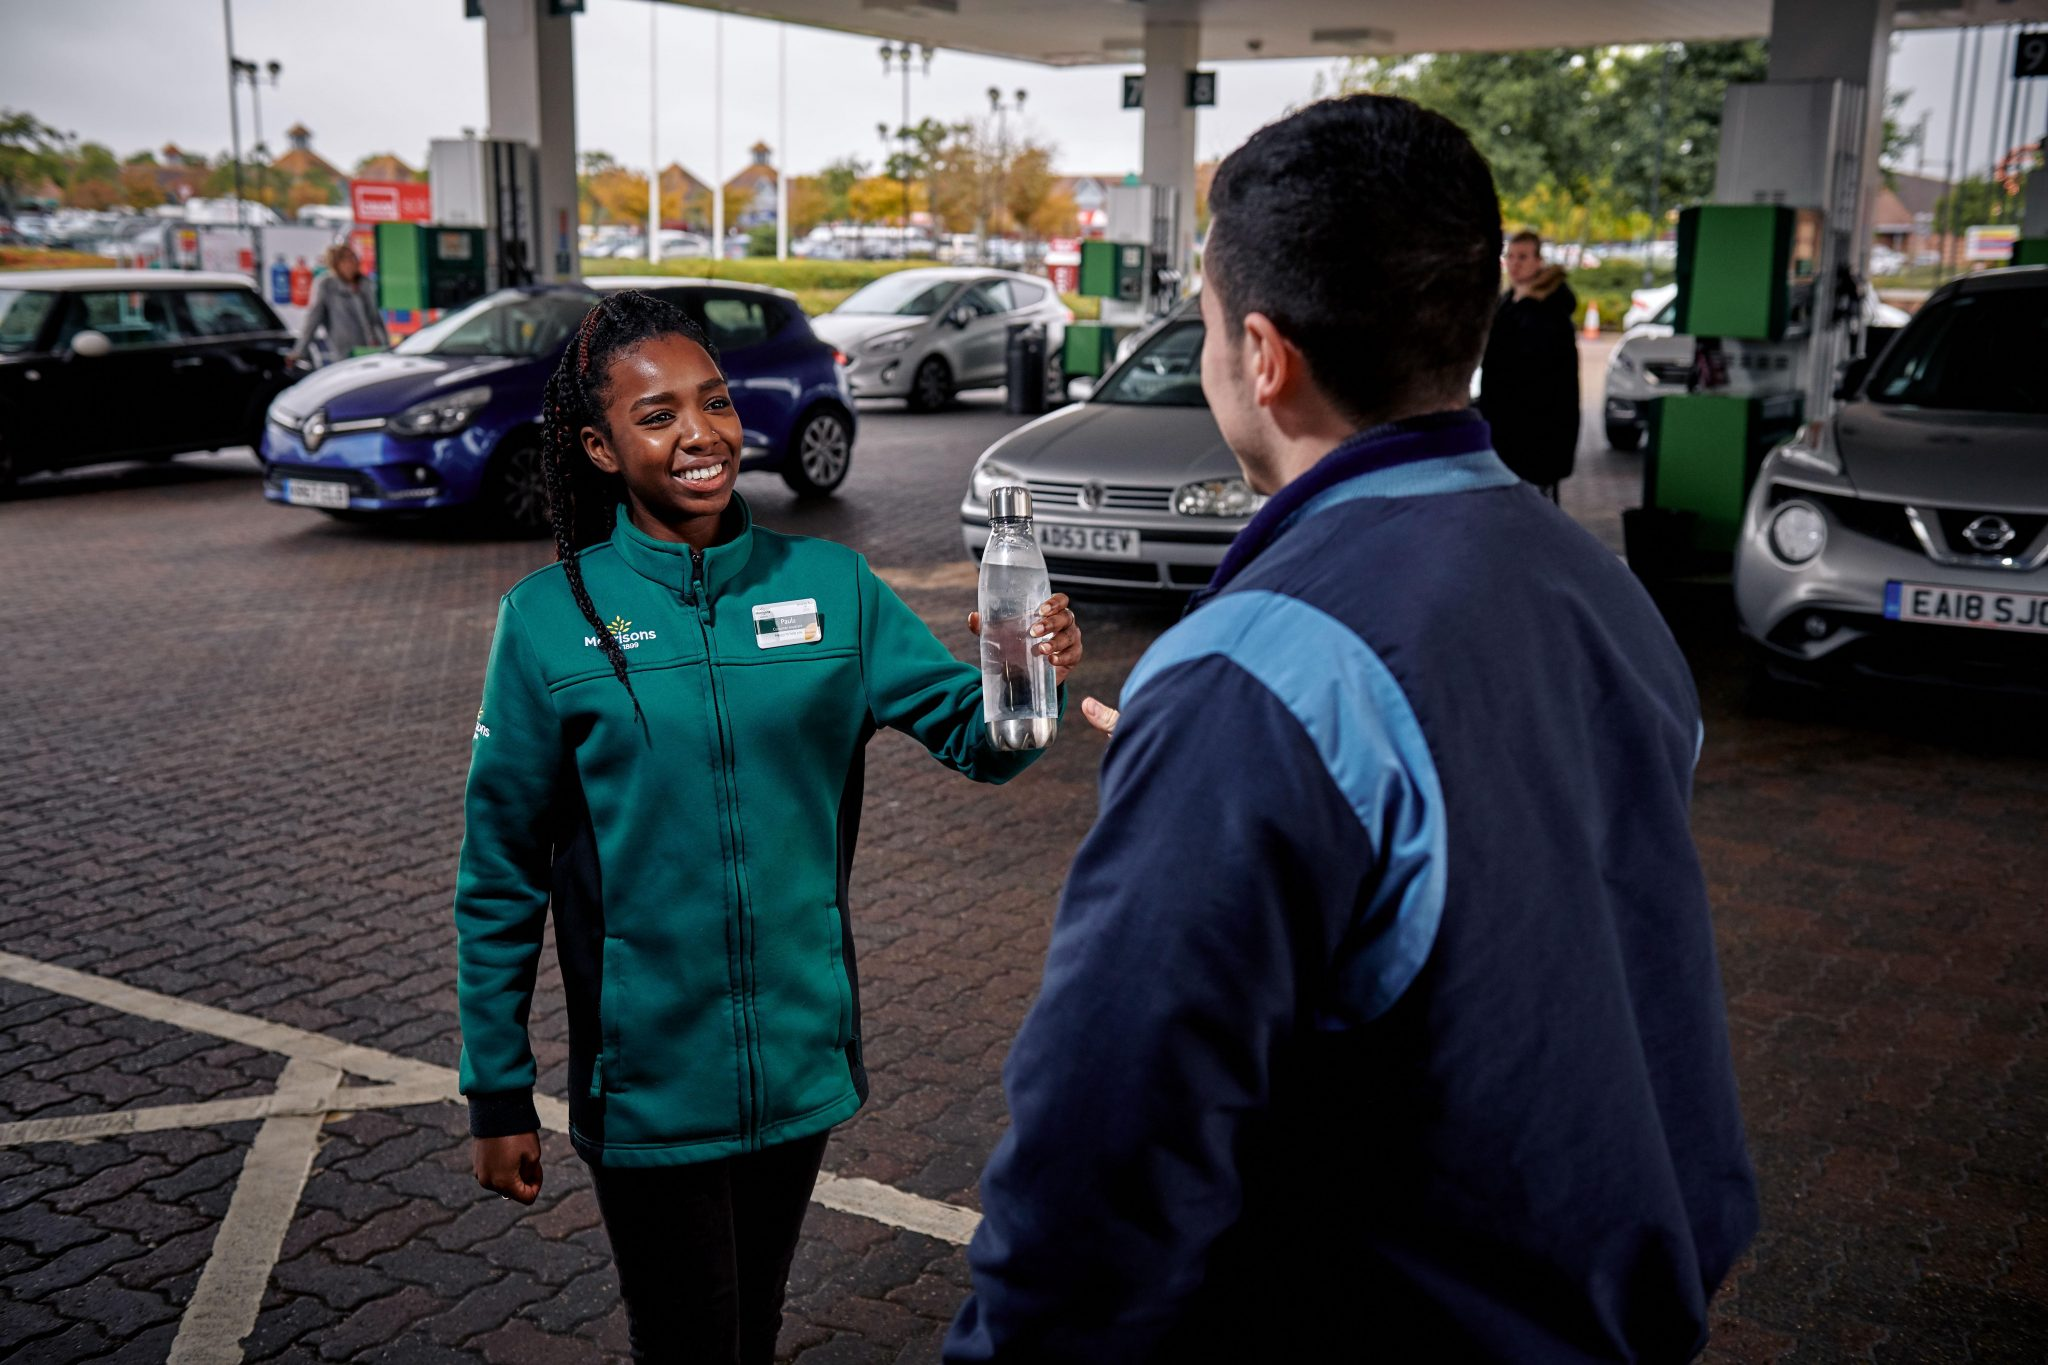 Free water refills are now available at Morrisons' forecourt stores